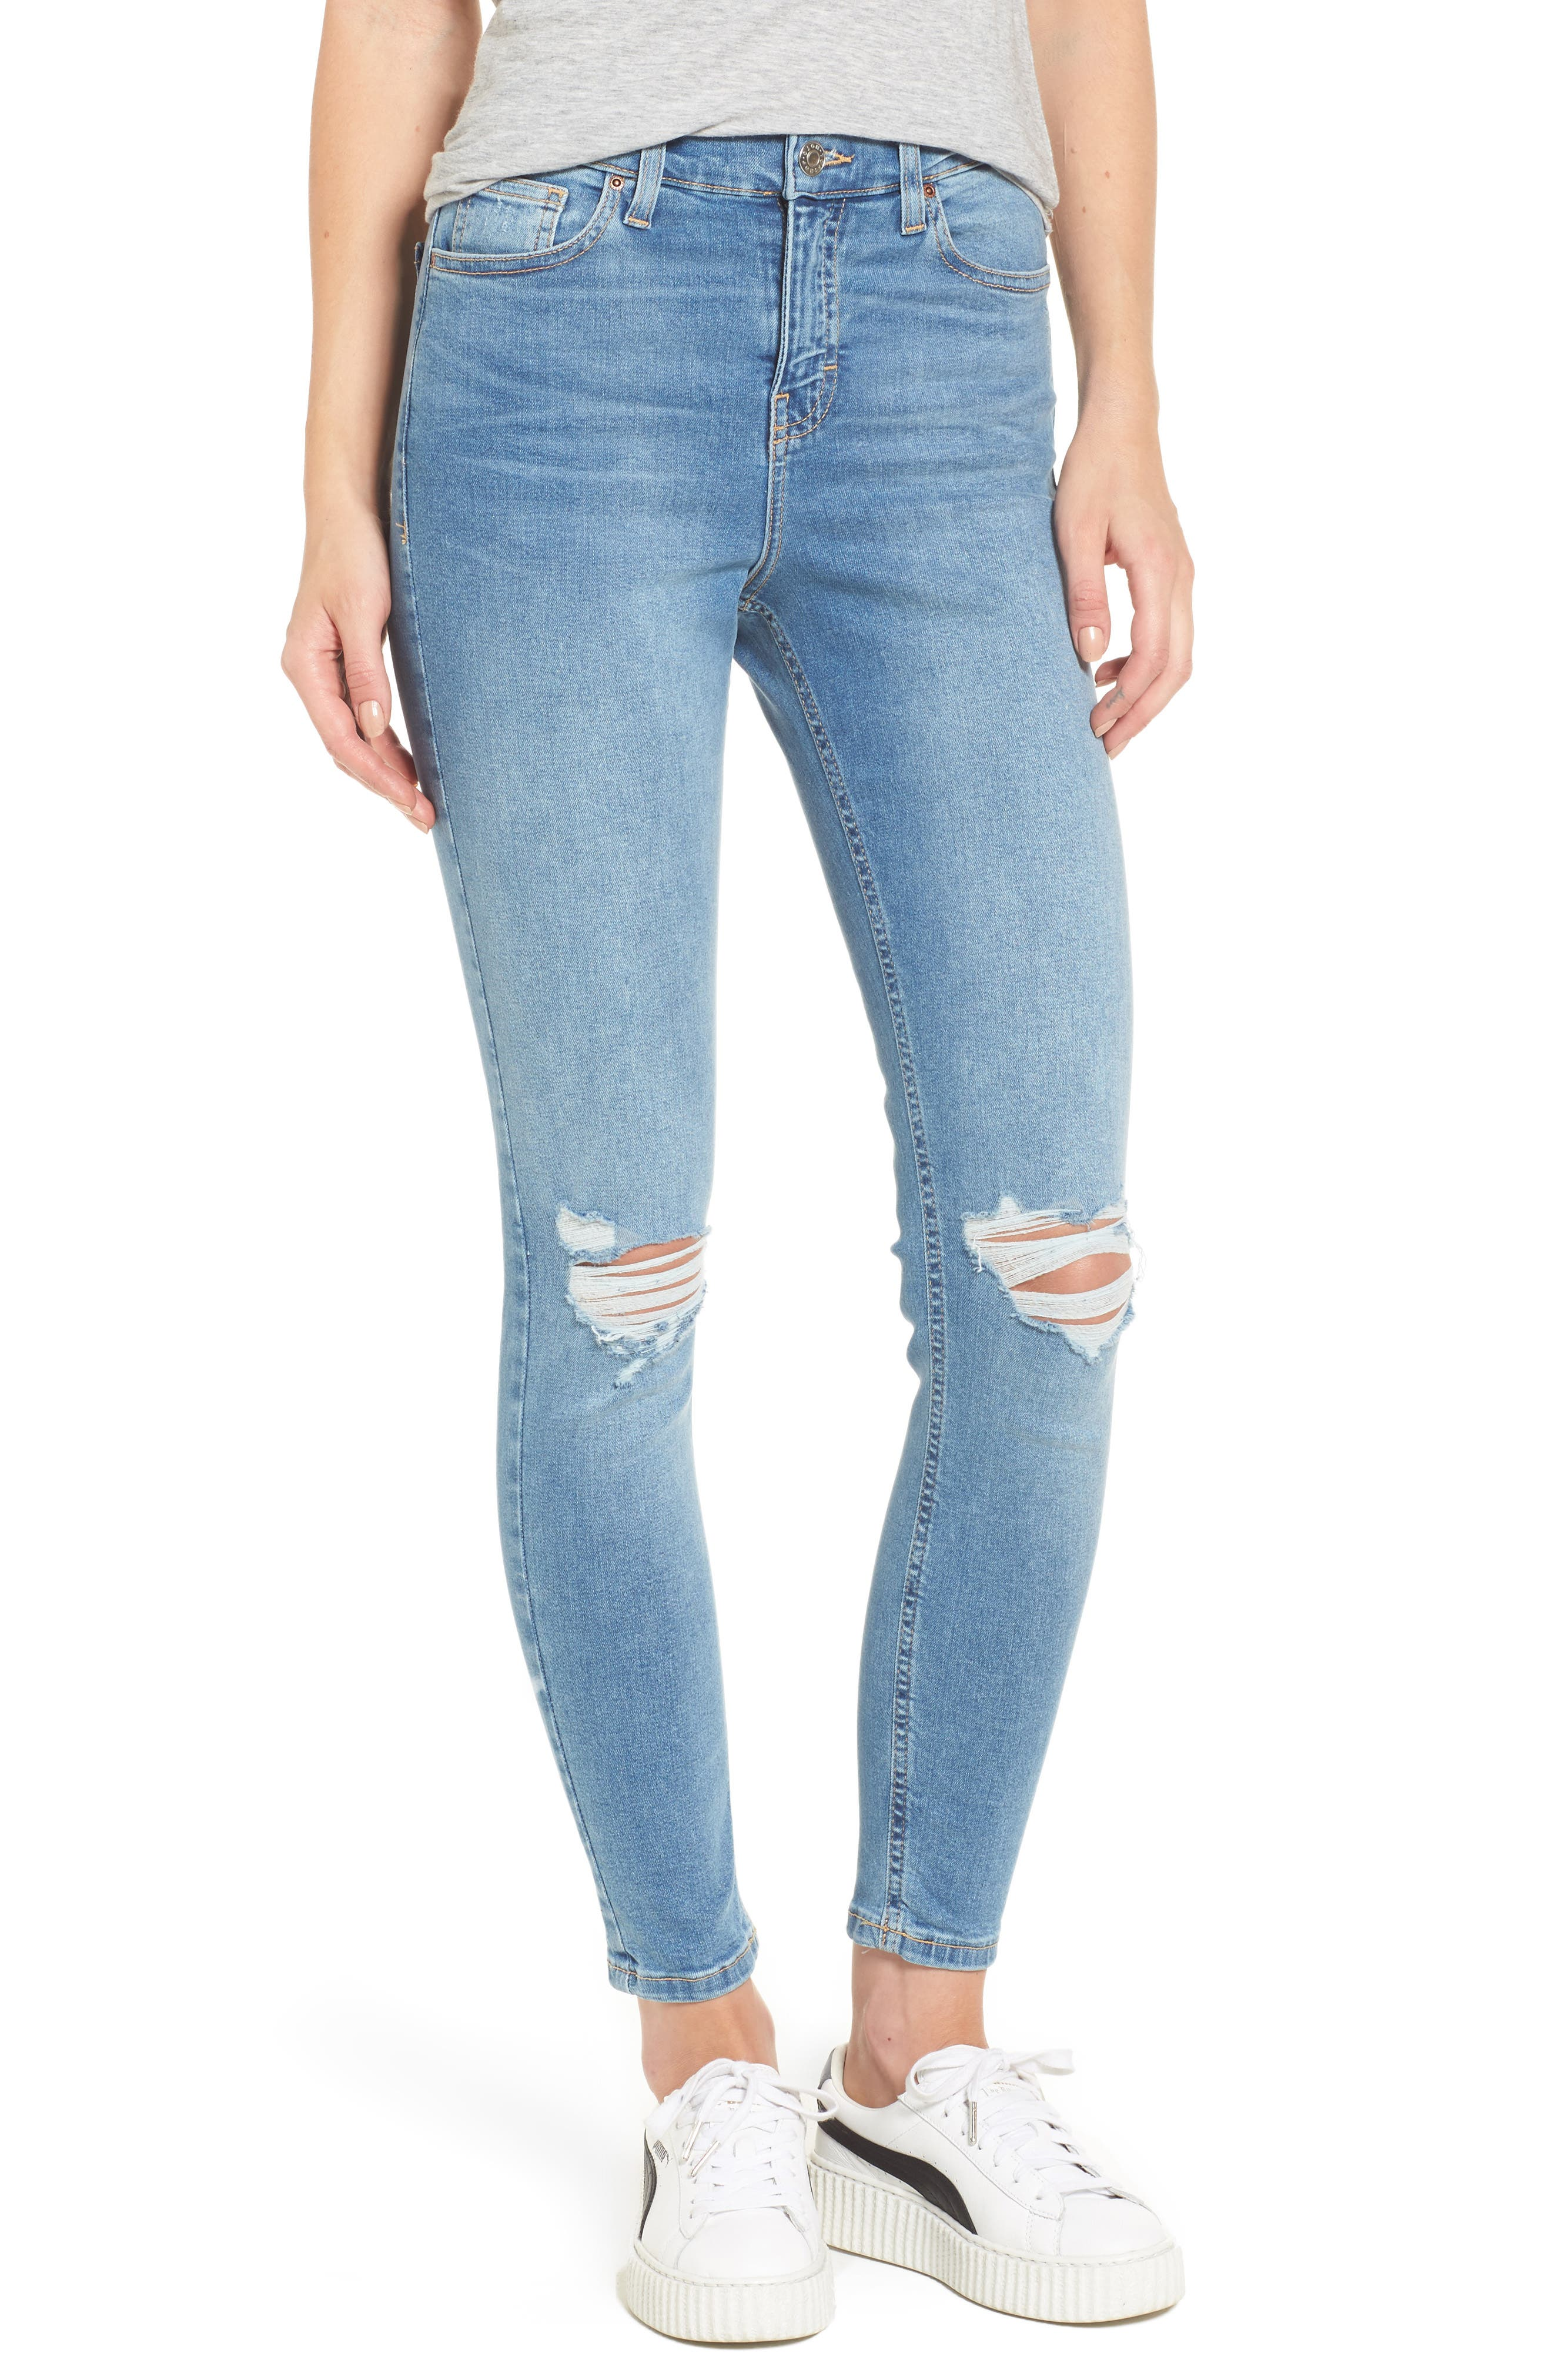 Moto Jamie Ripped High Waist Ankle Skinny Jeans,                         Main,                         color, Mid Denim